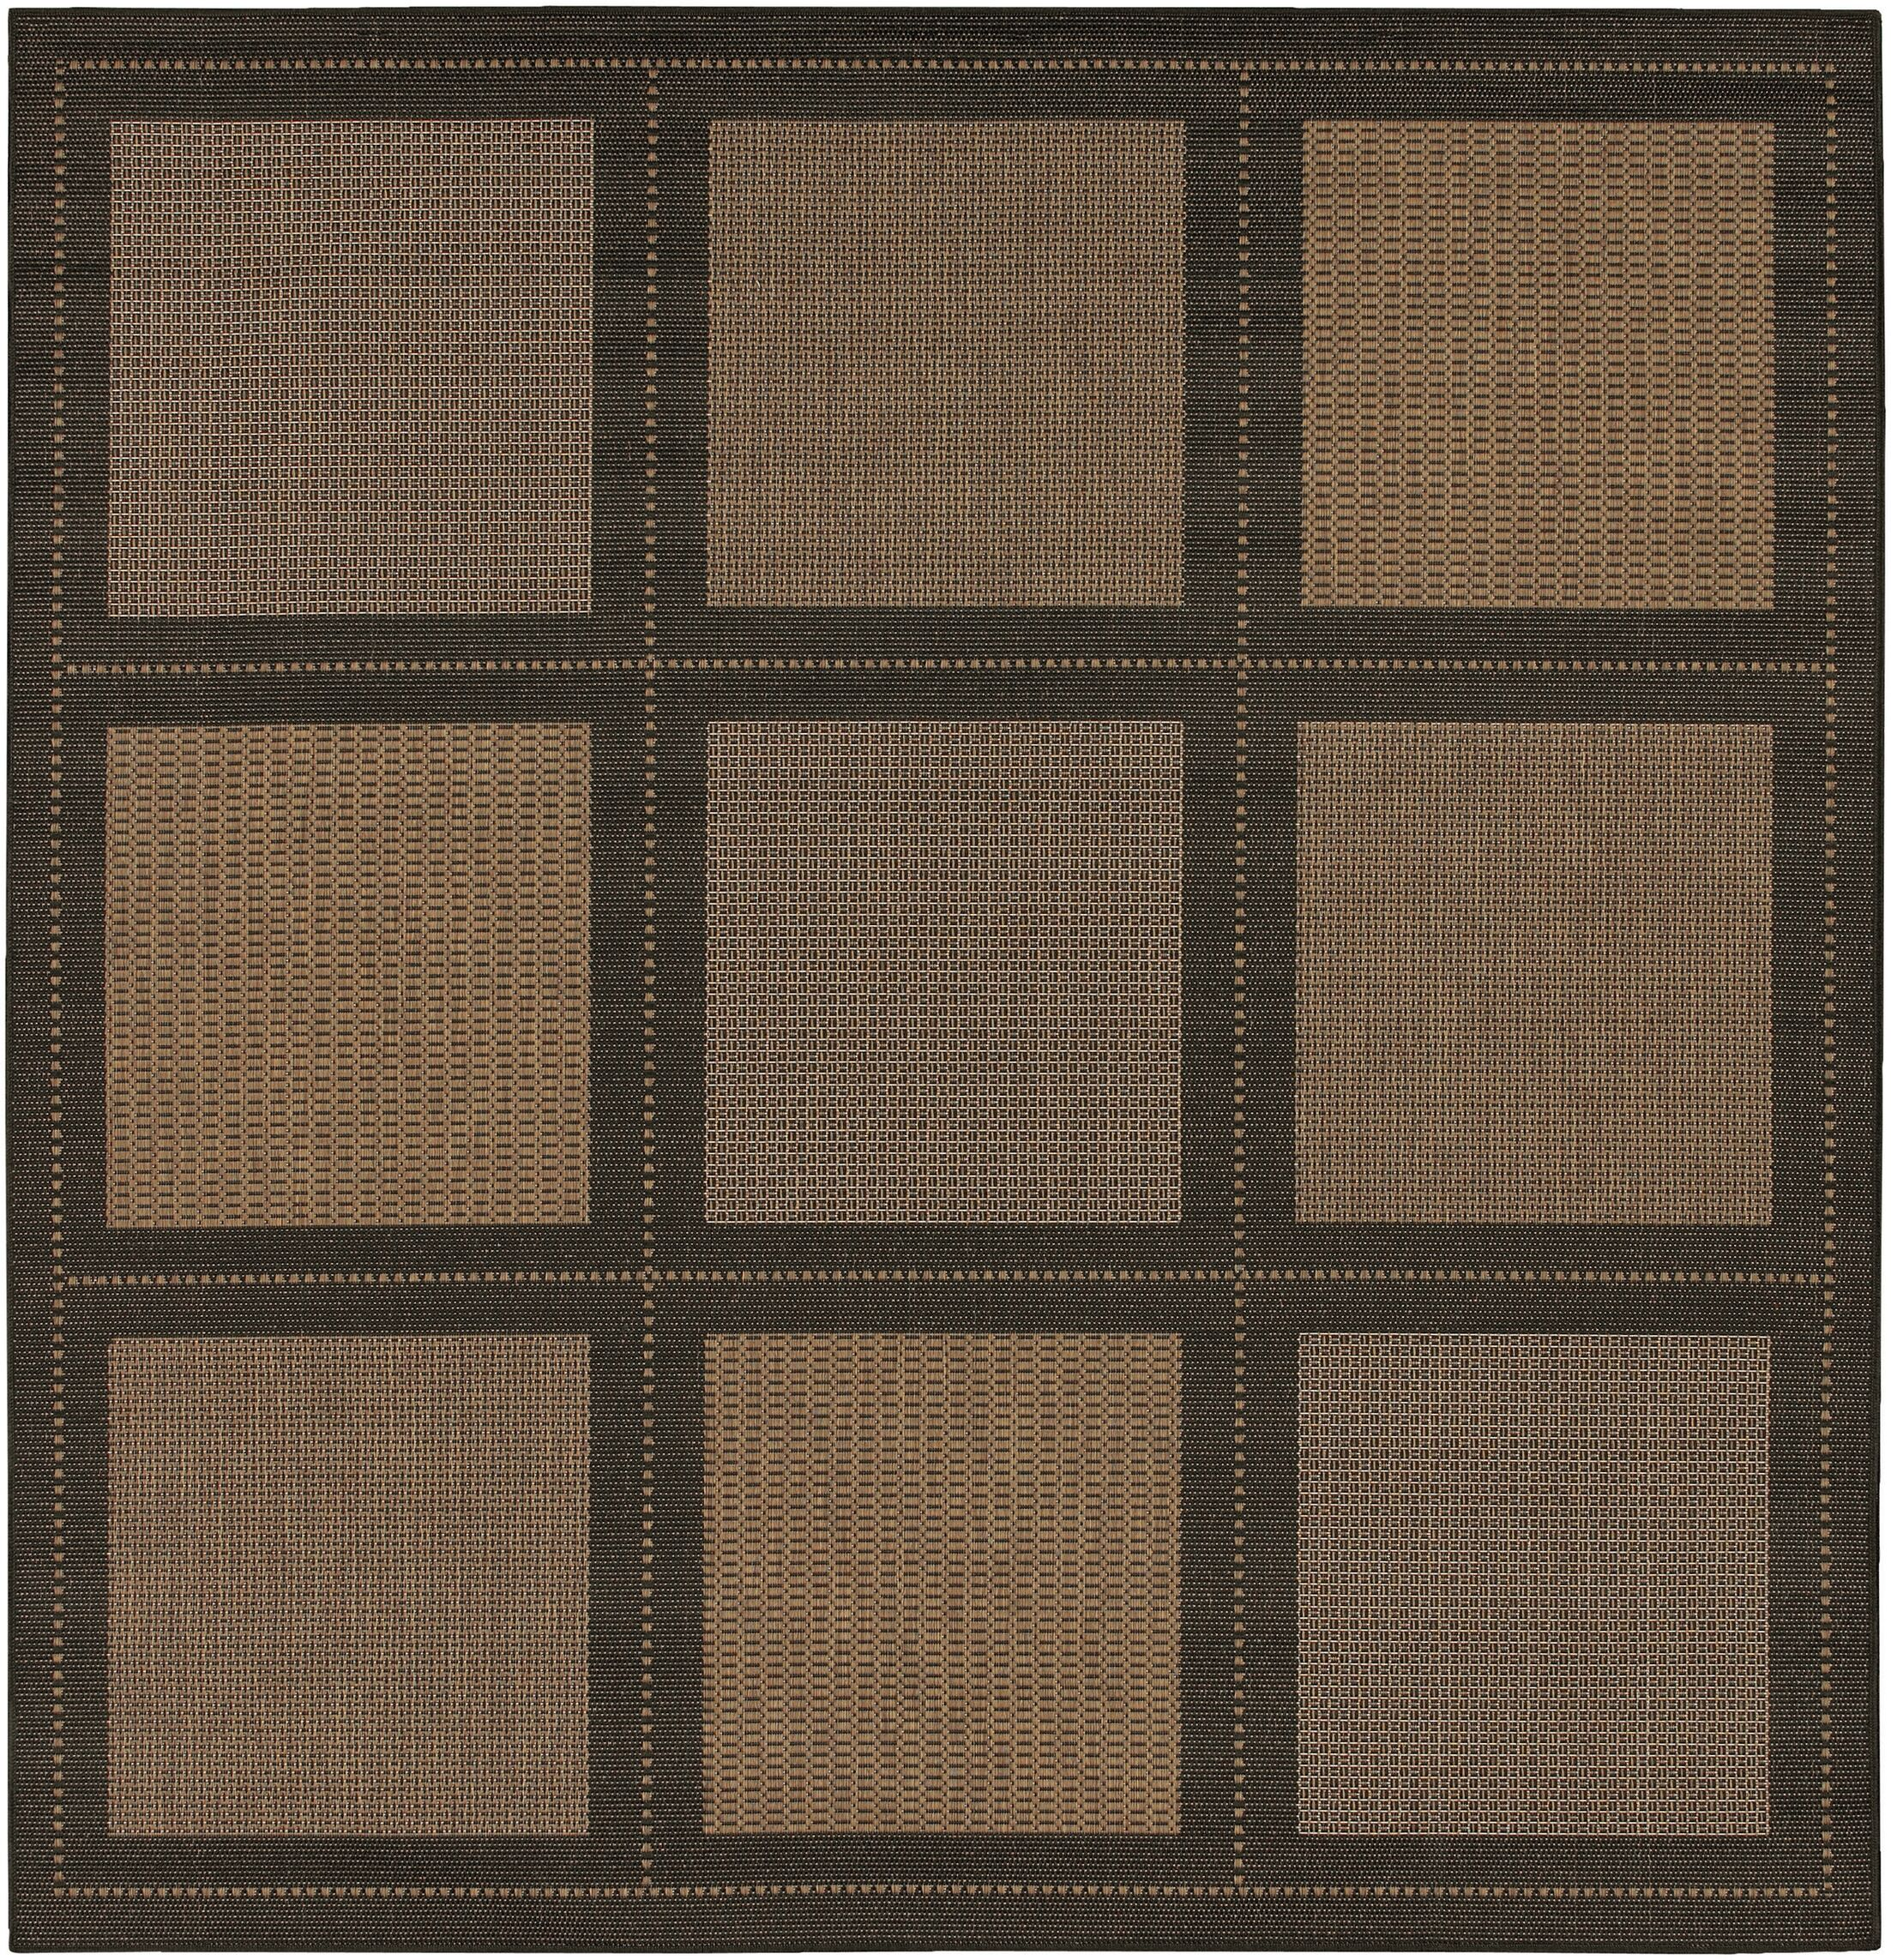 Westlund Cocoa Indoor/Outdoor Area Rug Rug Size: Square 8'6